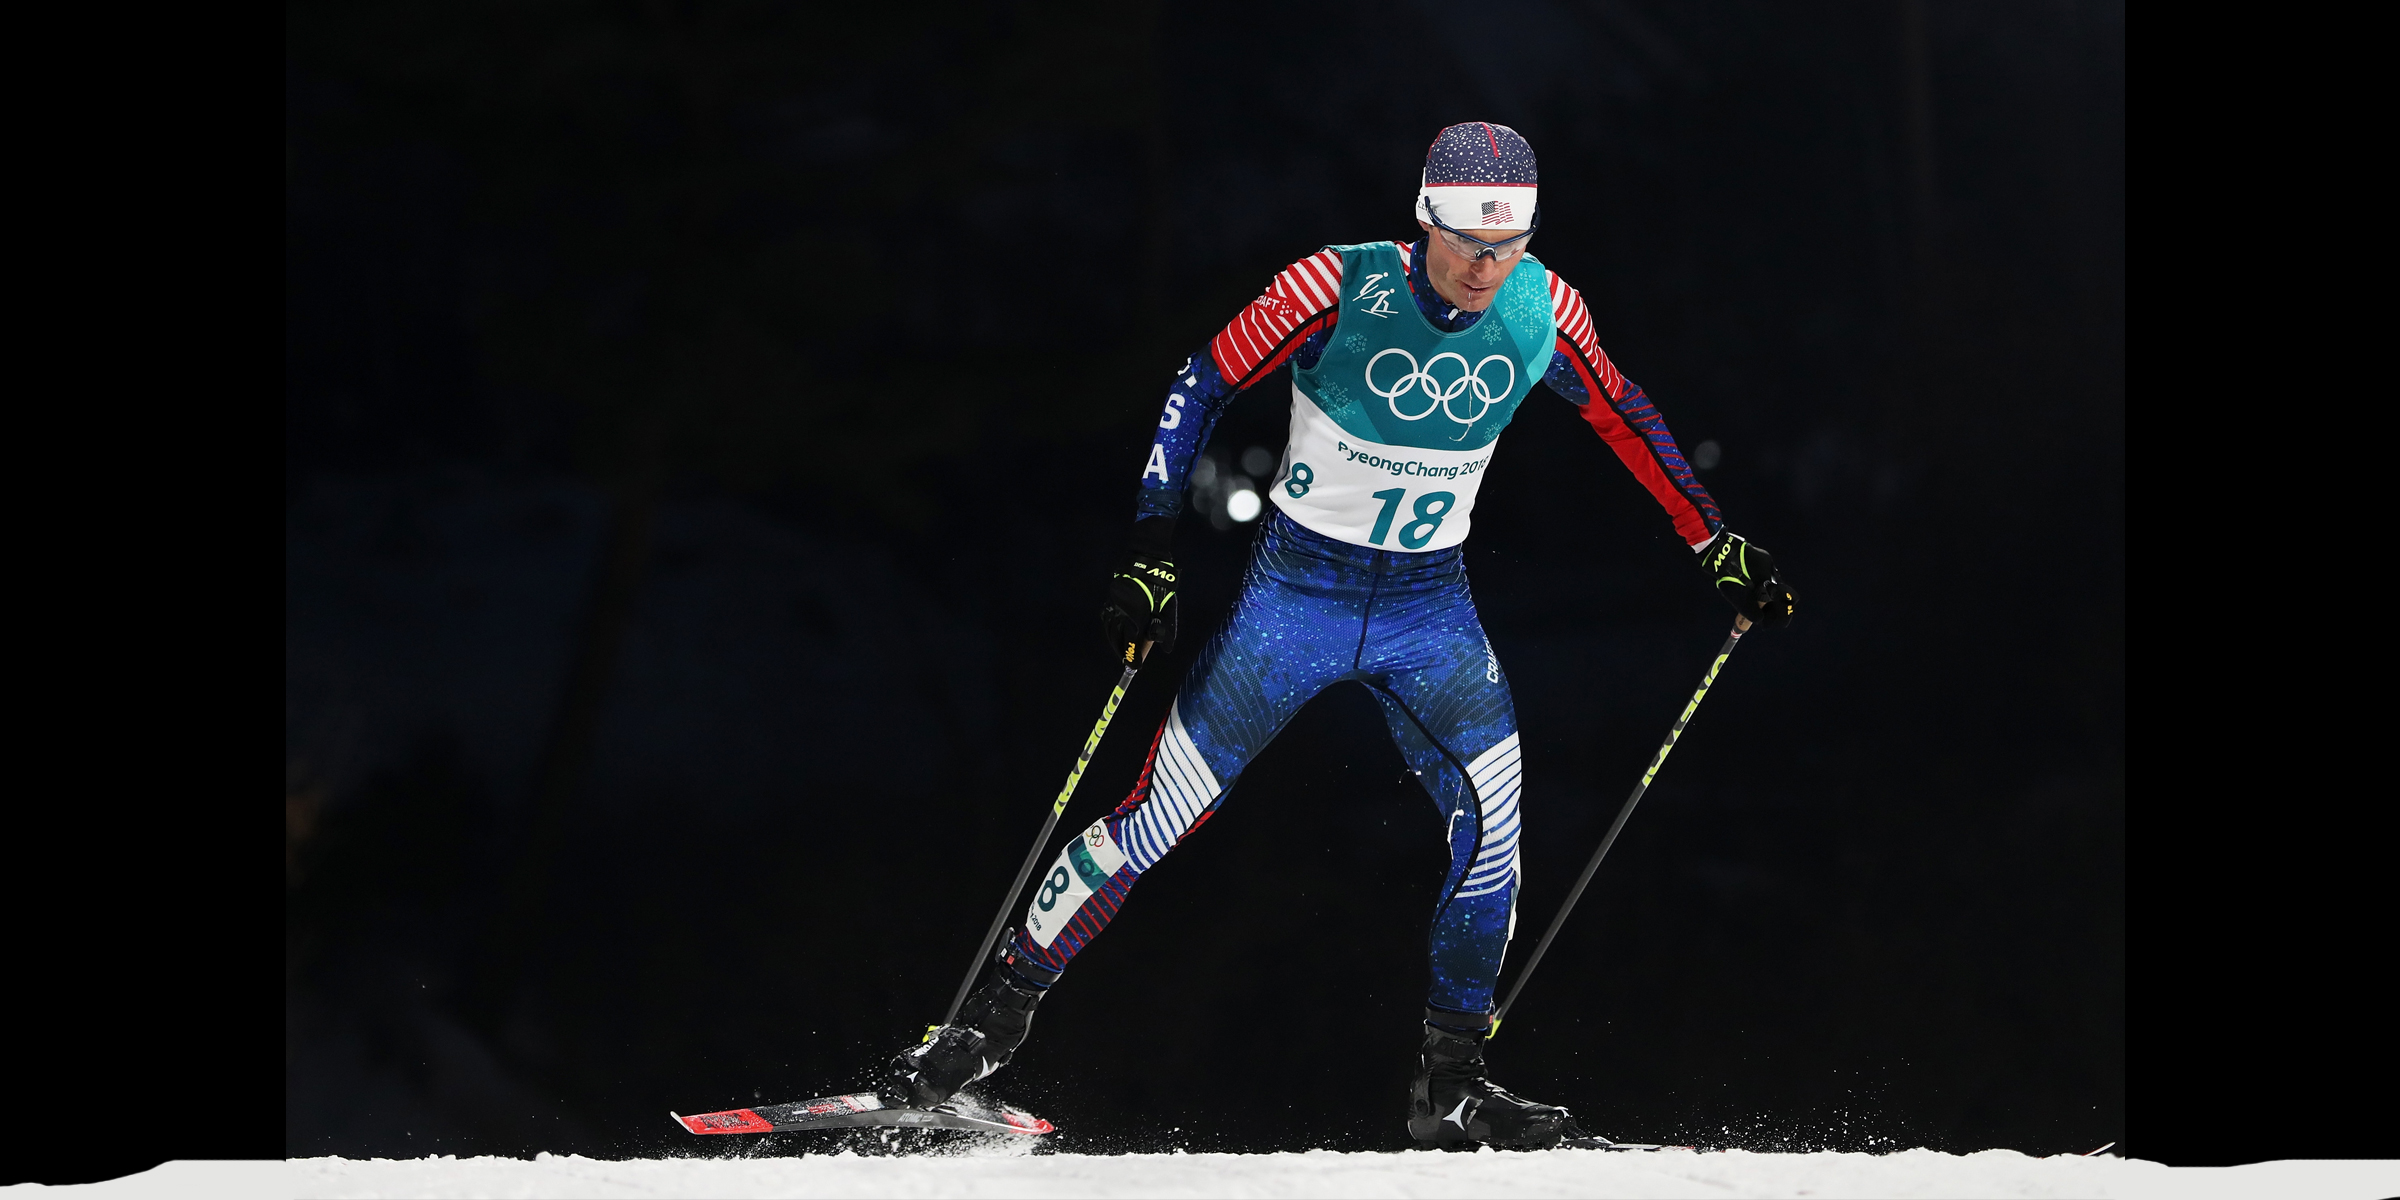 Bryan Fletcher wrapped up his final individual Olympic competition, finishing 17th Gundersen large hill/10k event. (Getty Images – Al Bello)